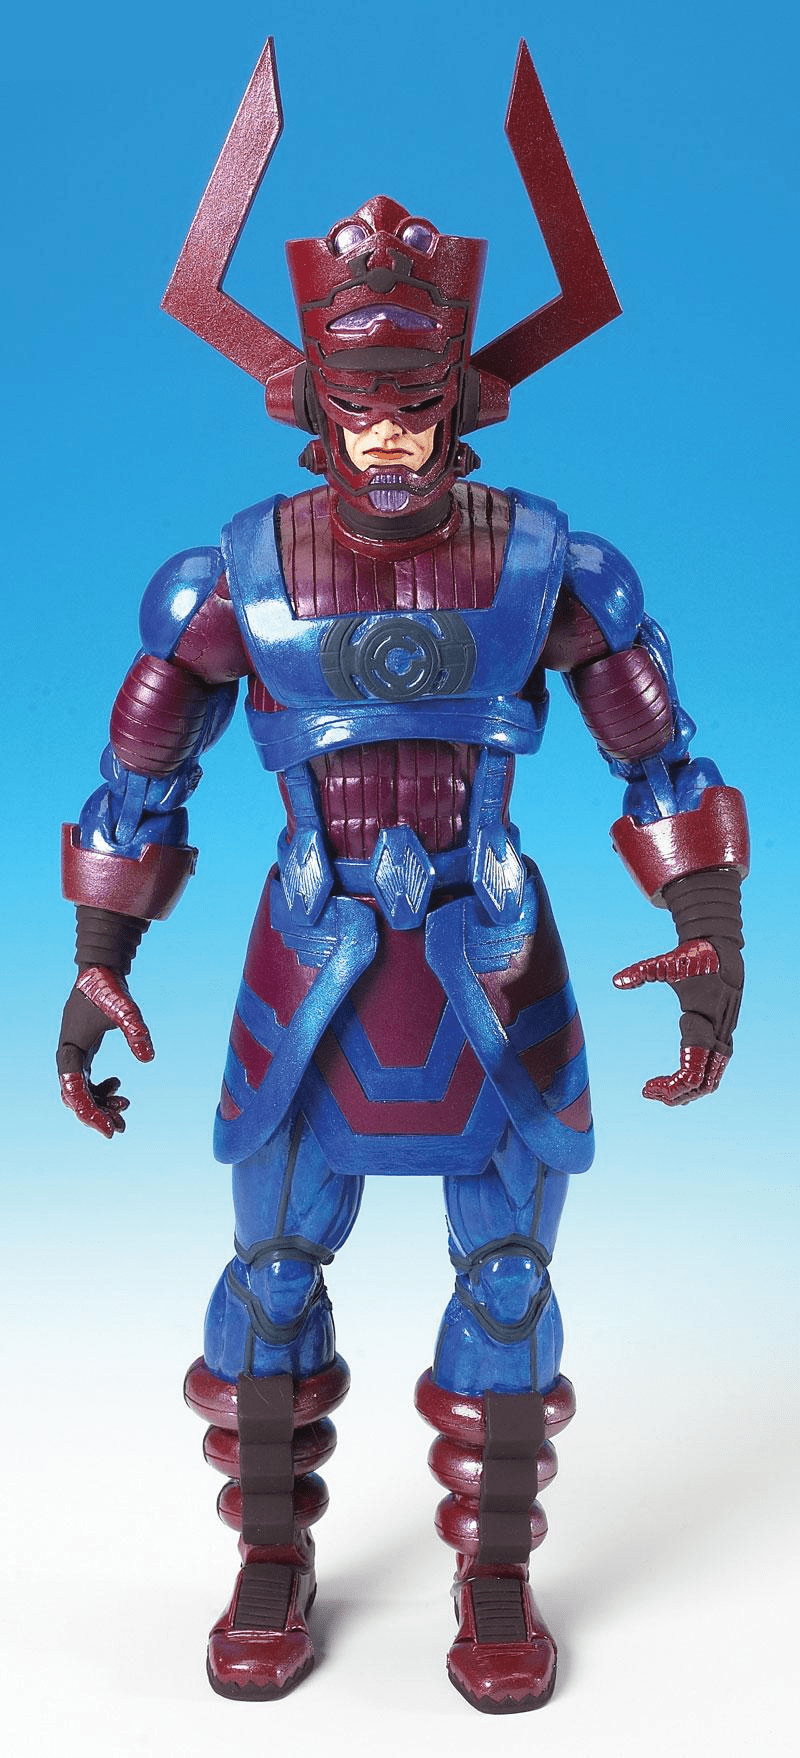 Marvel Legends Series 9 Galactus Action Figures